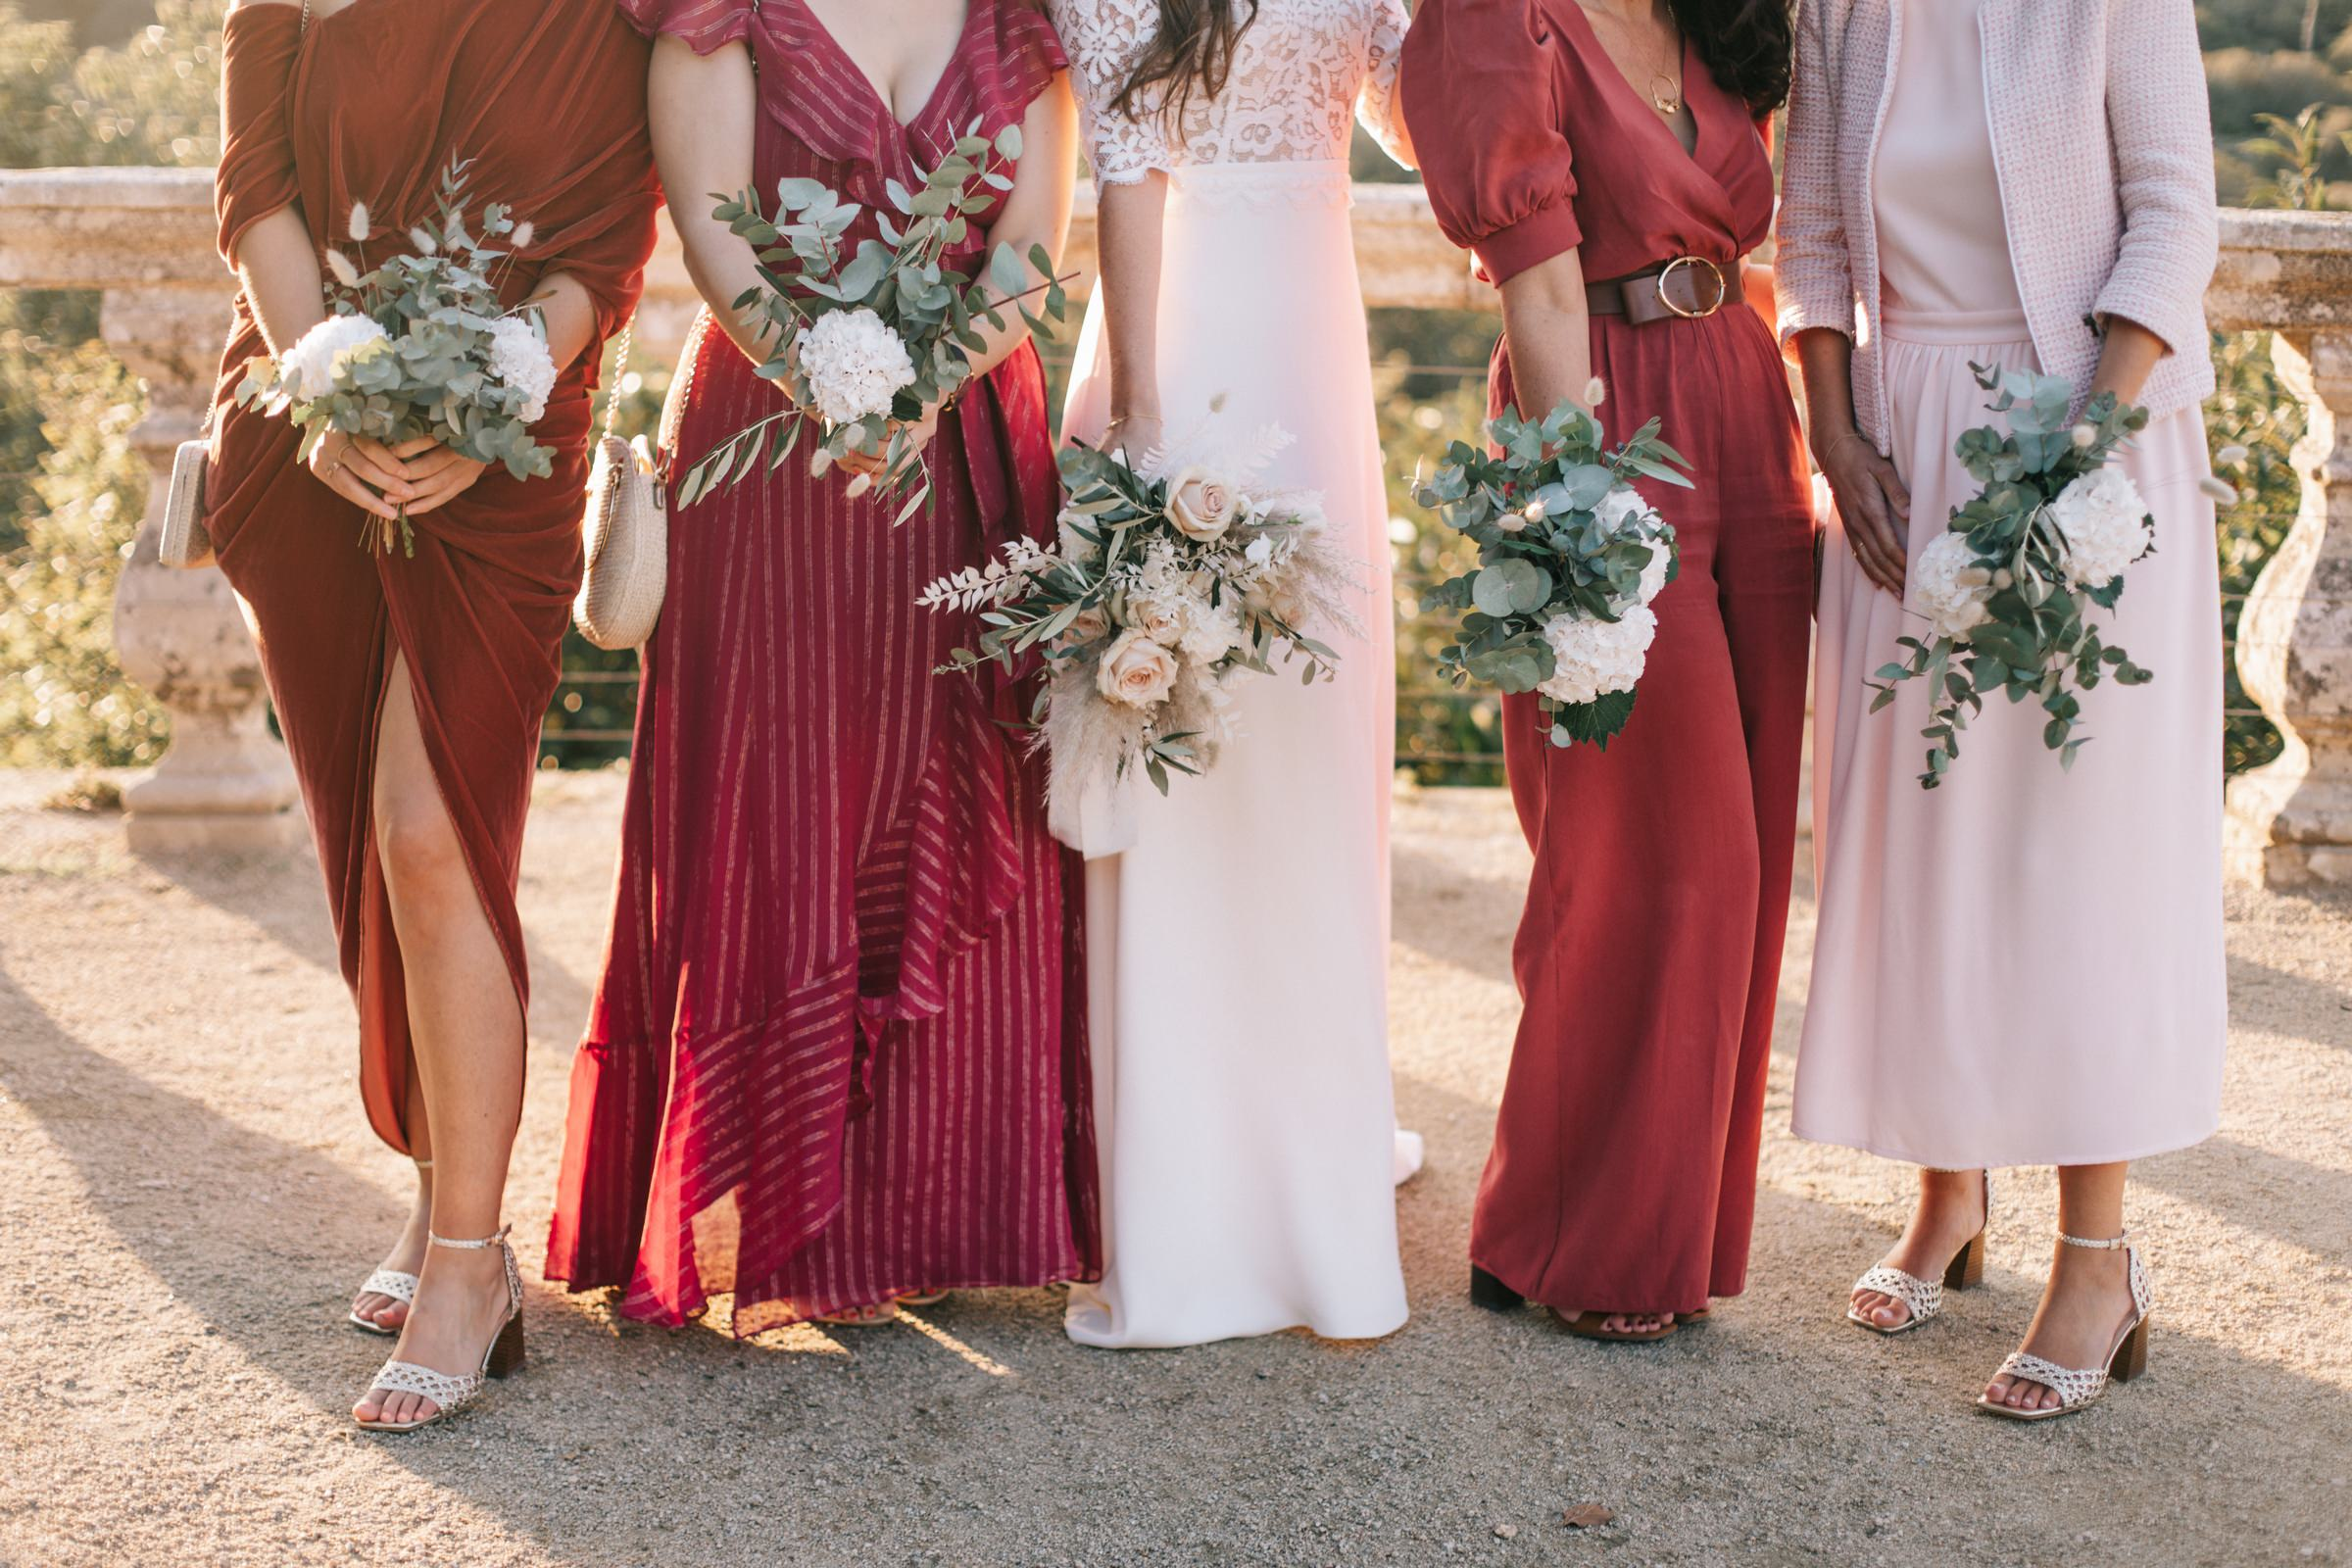 bridal party floral bouquets- photo by Amandine Ropars, france